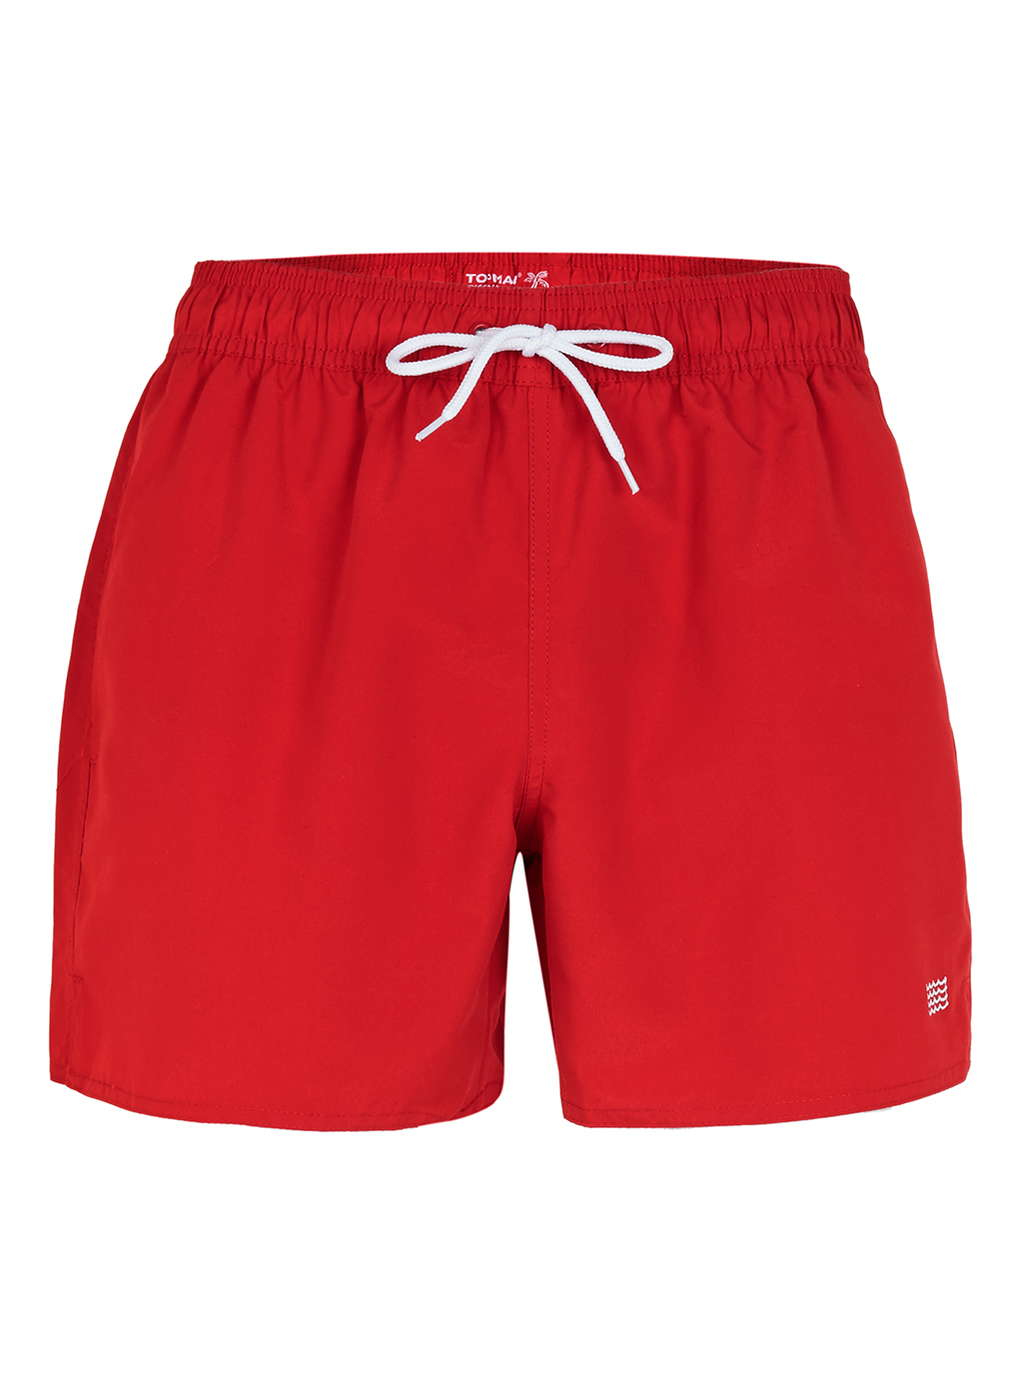 Men's swim trunk styles by activity. Tight fit swim trunks for water activities come in styles such as low cut briefs and square cut. Each exists in solid or colorful prints.